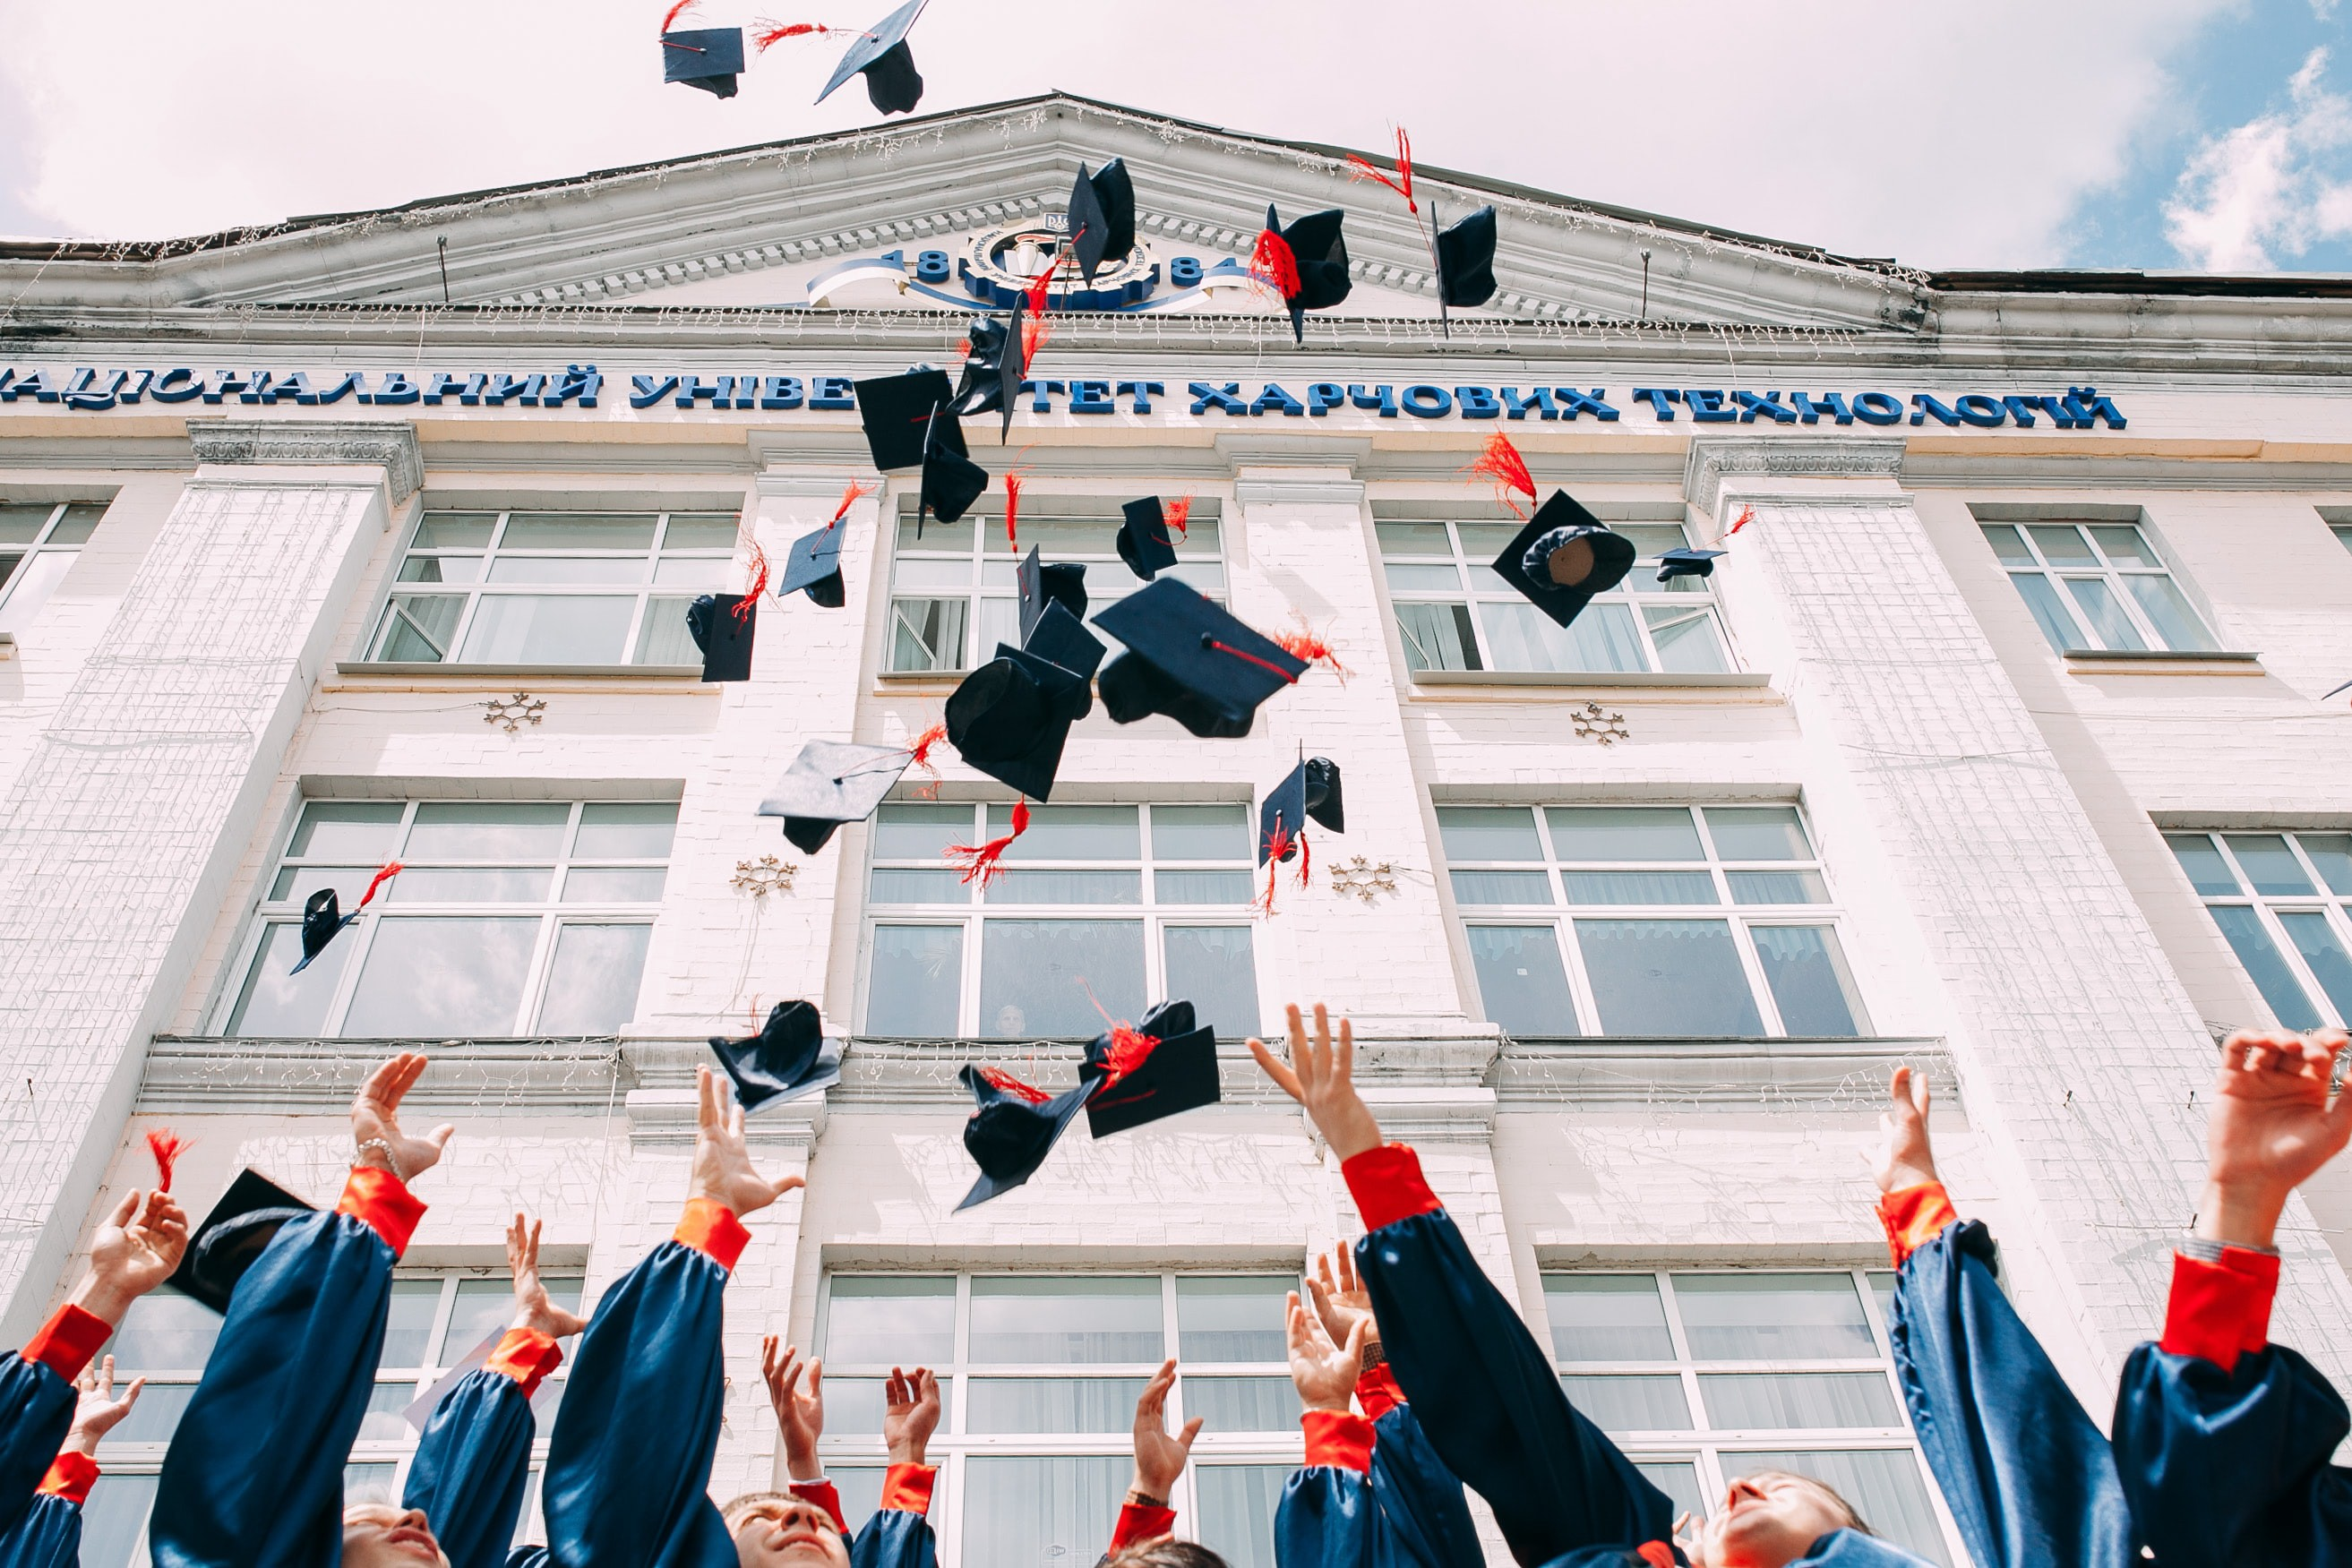 Students throwing their graduation caps in the air.